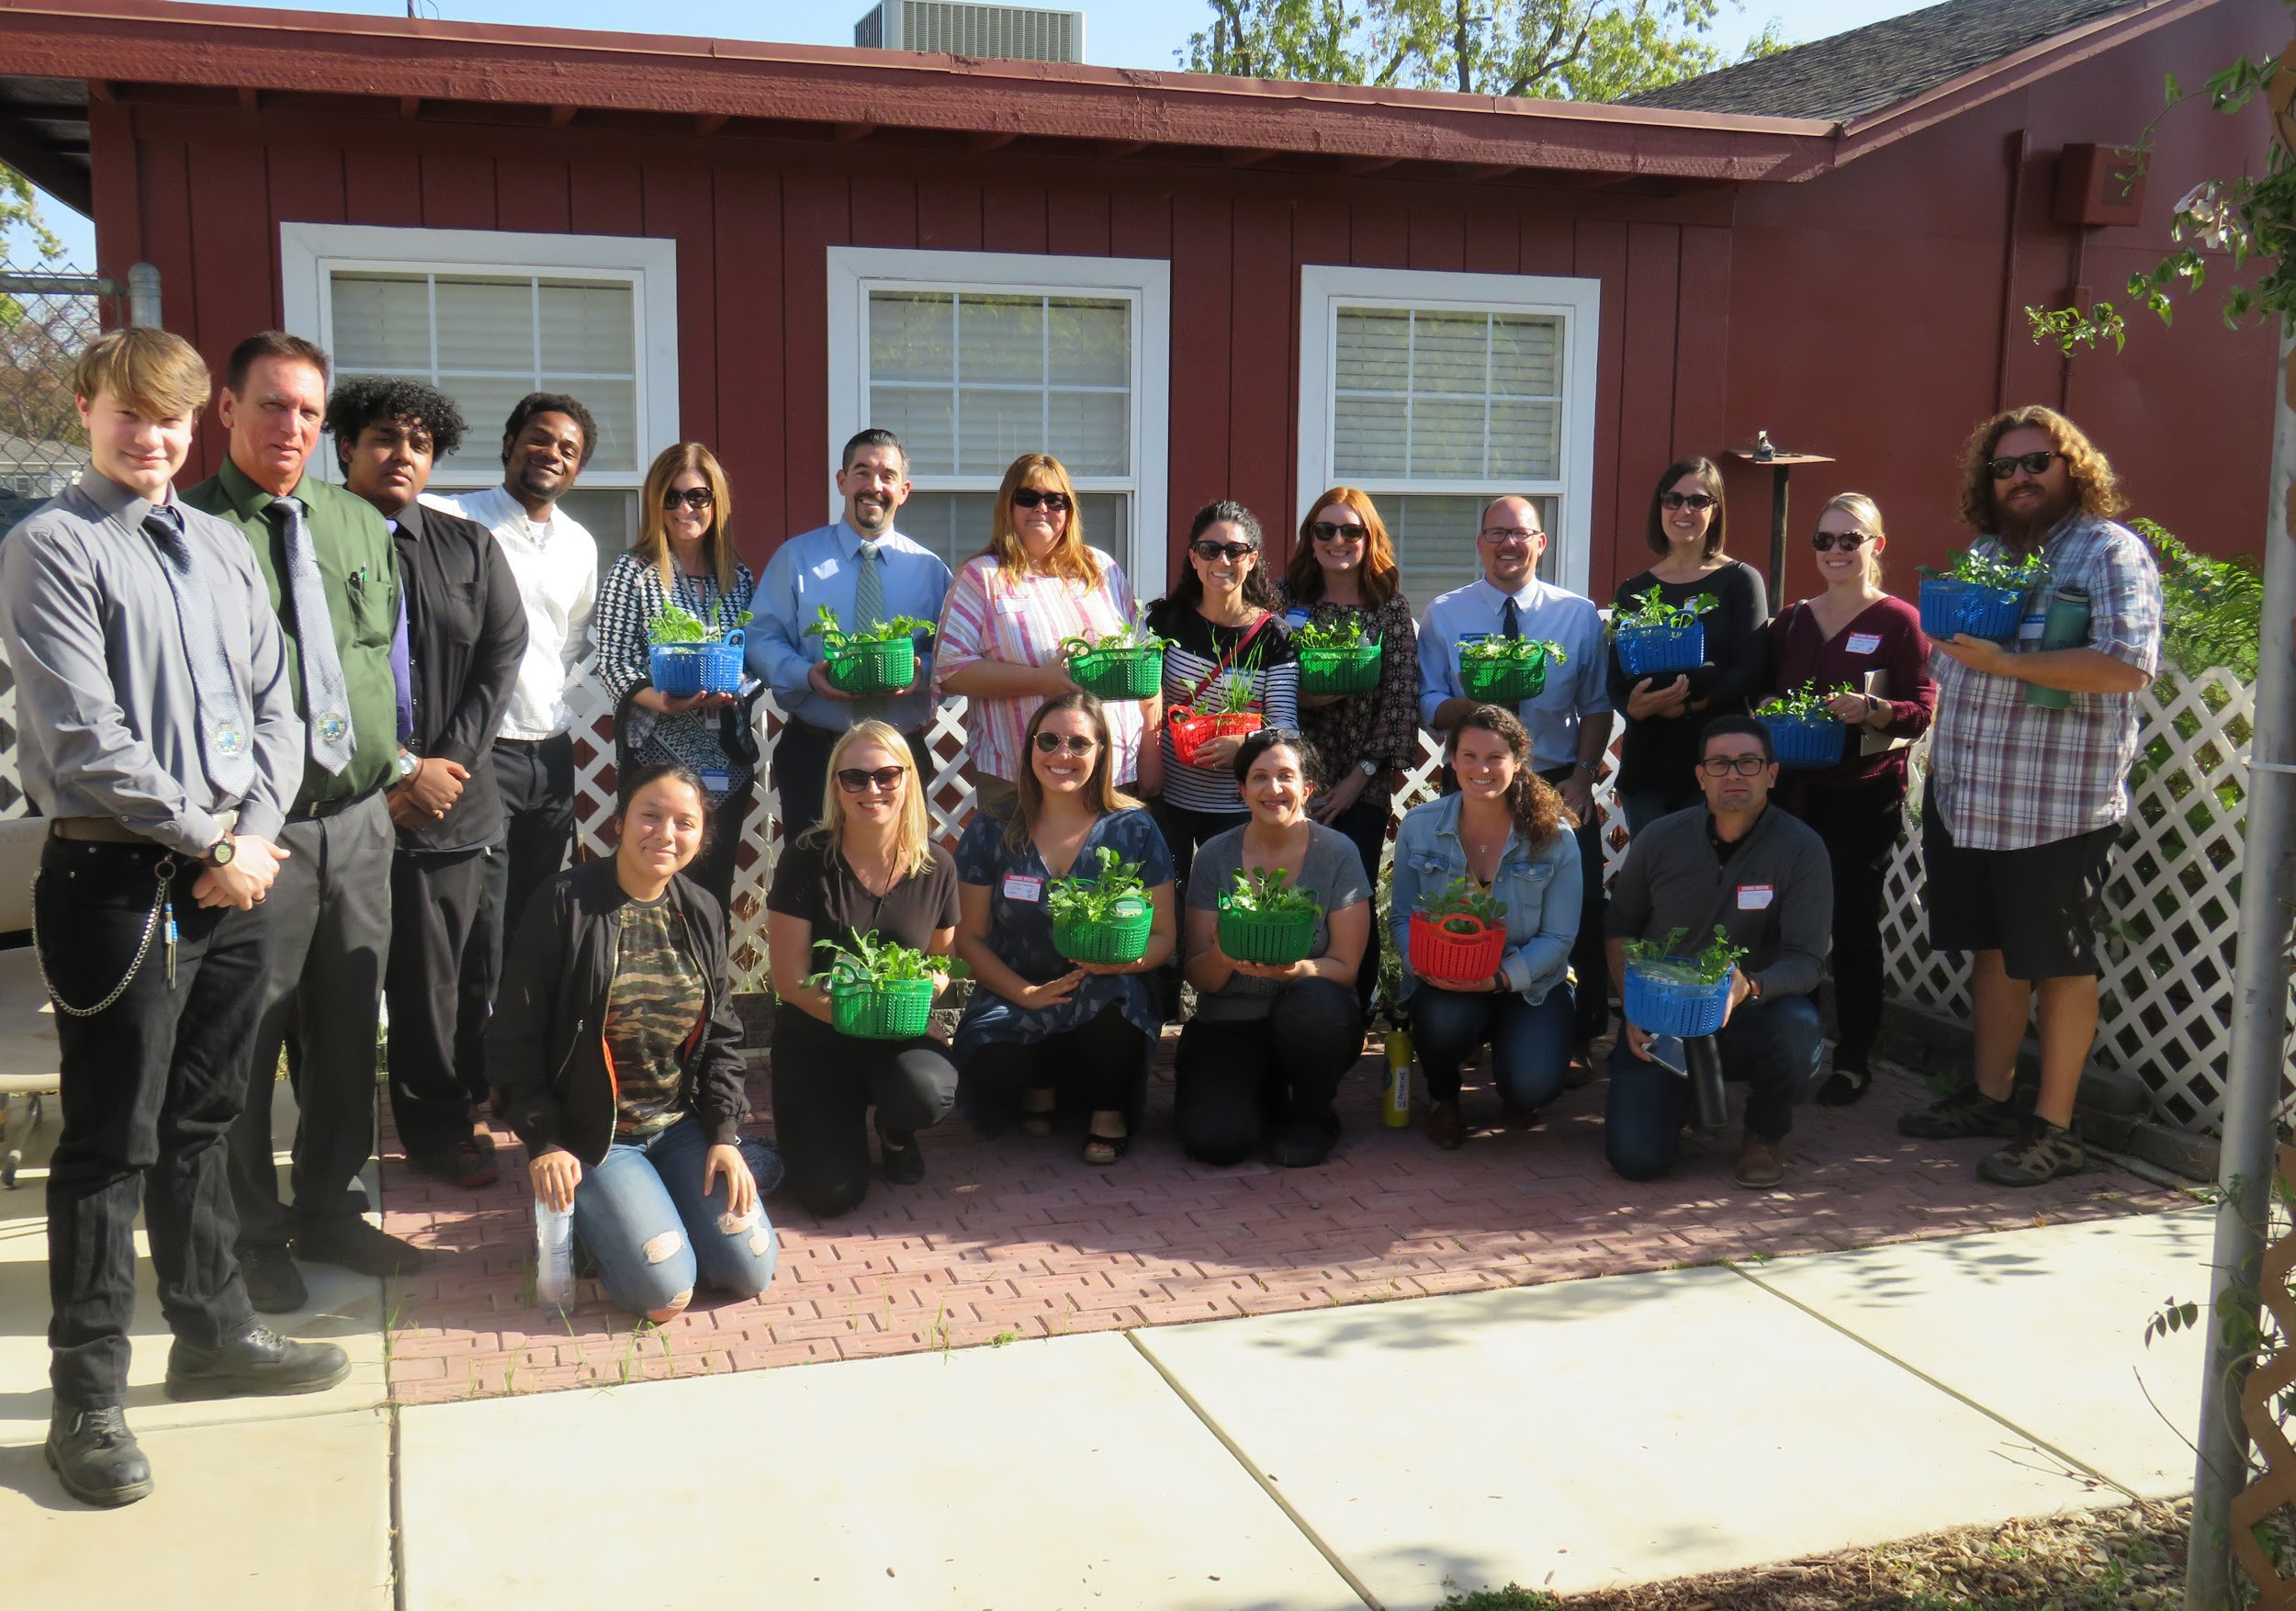 Teachers and students pose outdoors, holding plants